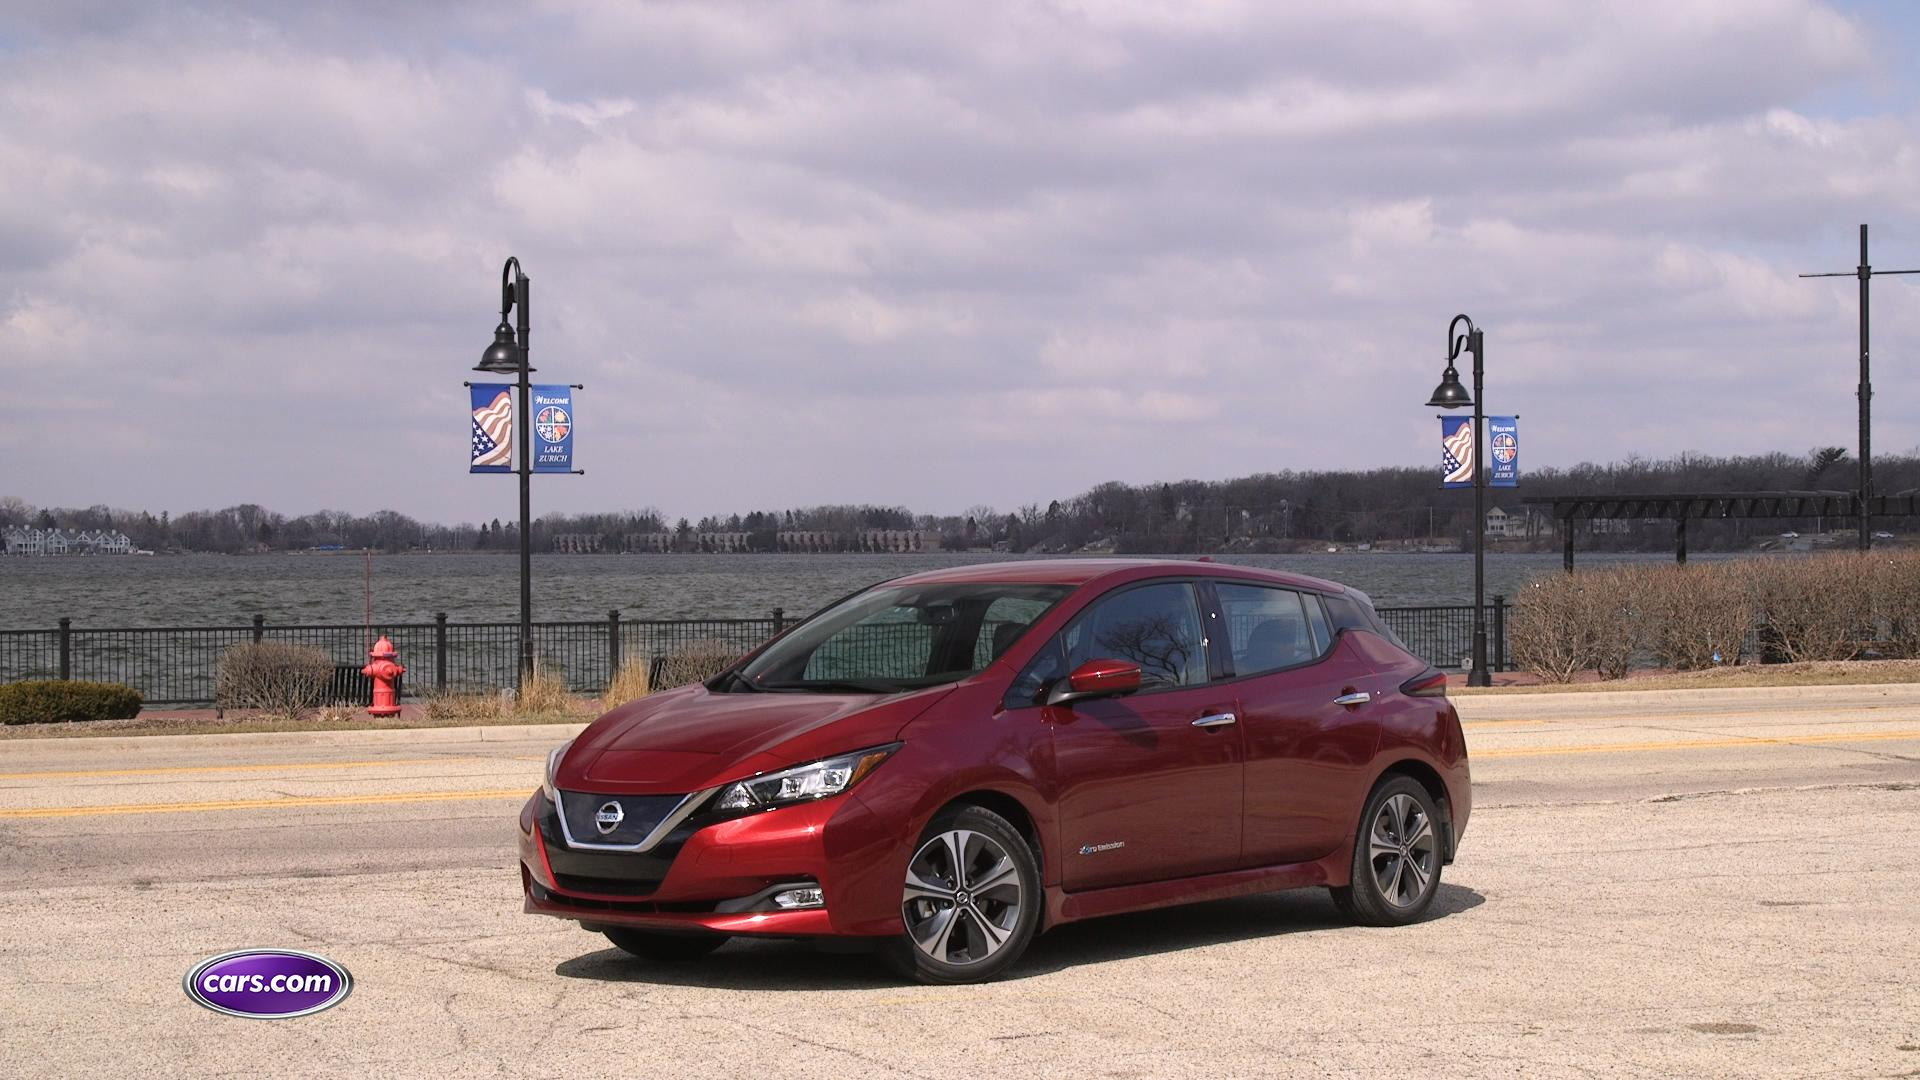 Nissan - Latest models: Pricing, MPG, and Ratings | Cars.com